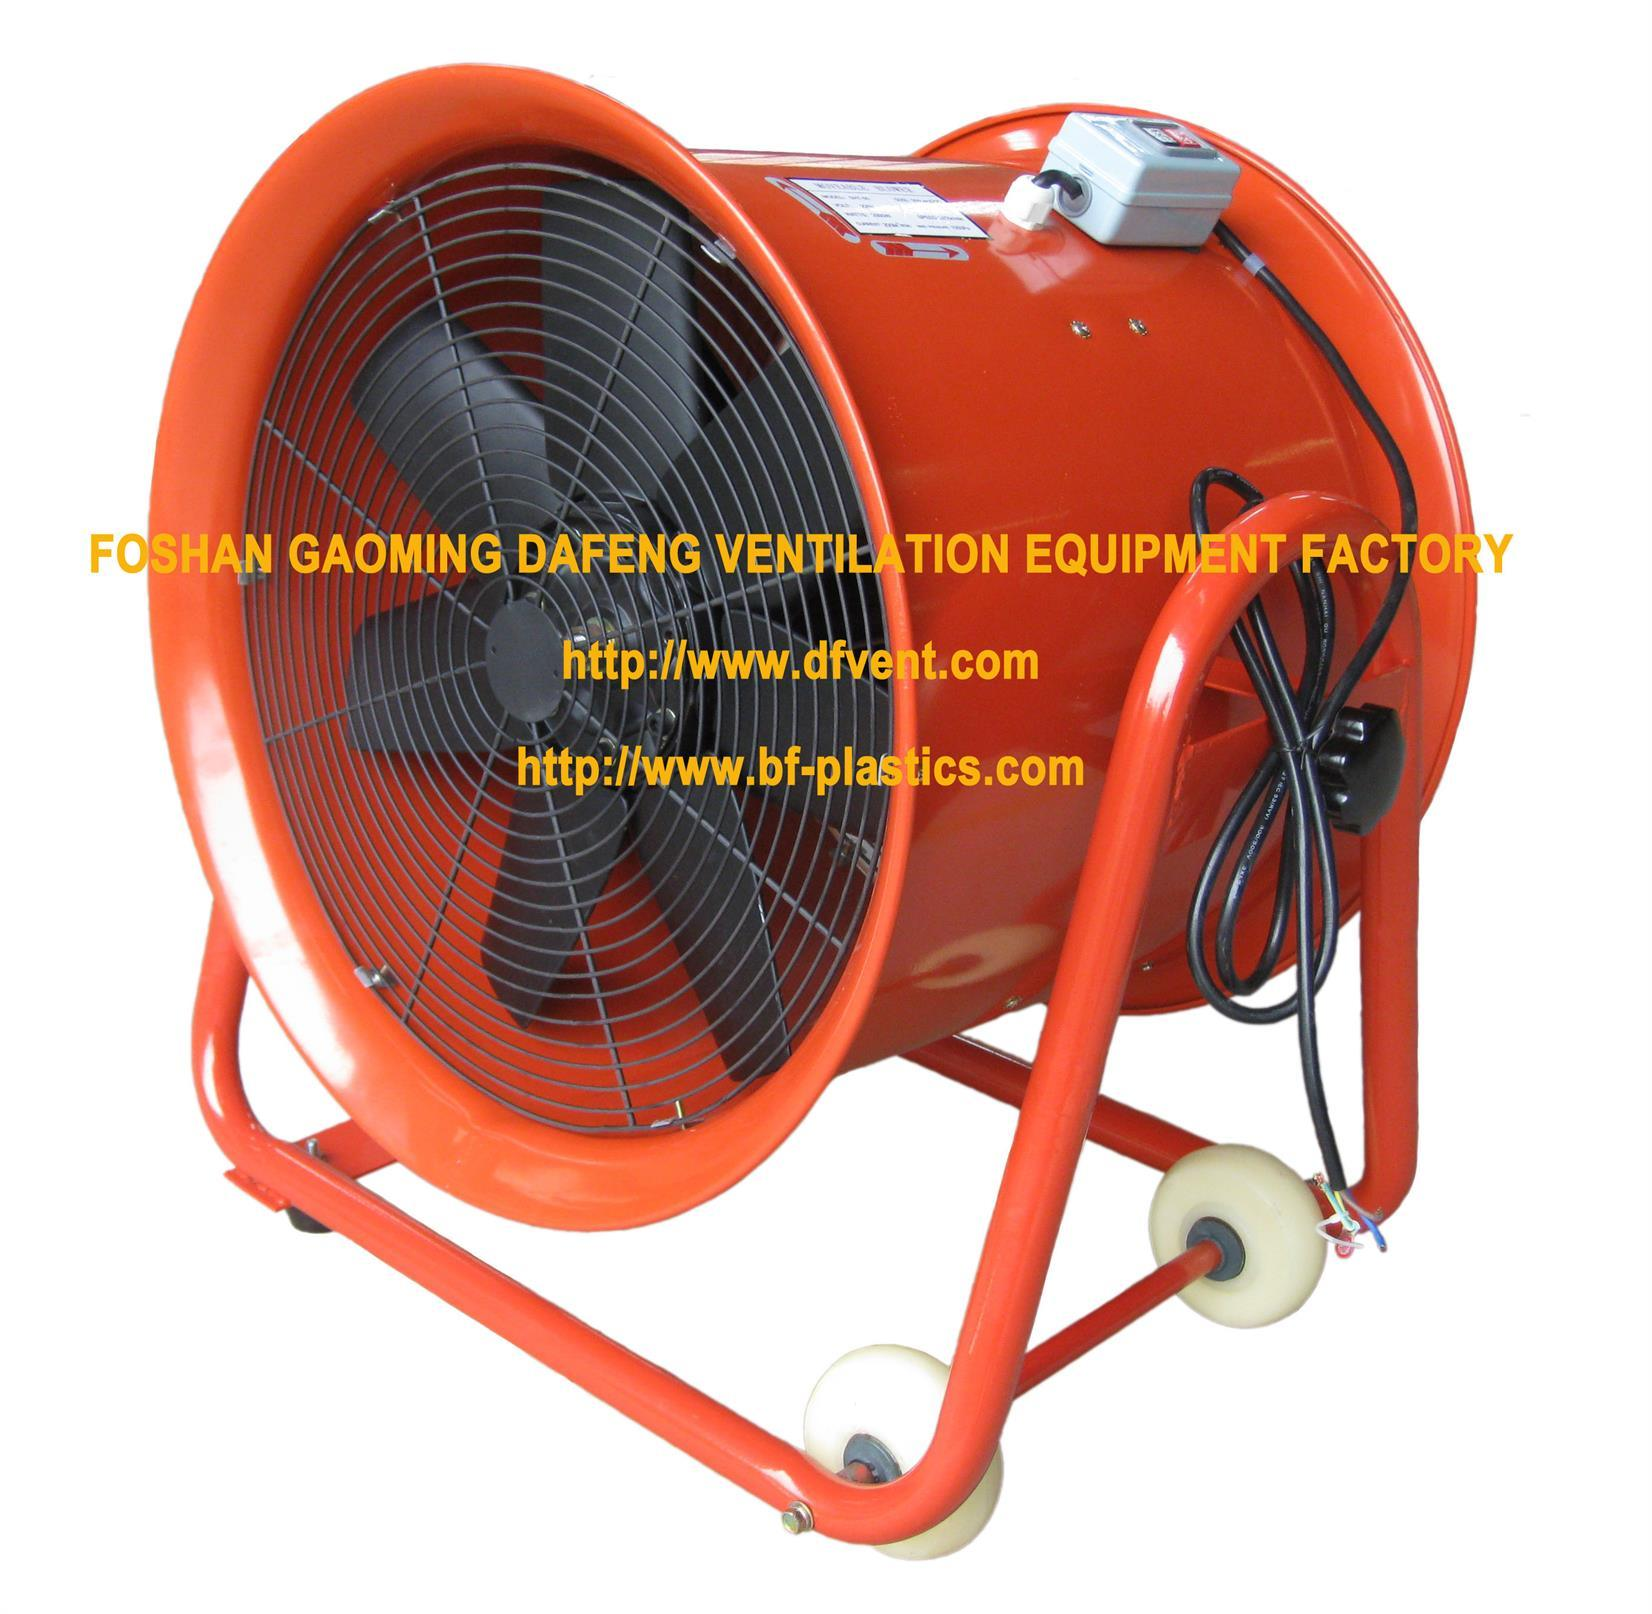 Industrial Portable Blower Fan : China mm industrial portable blower ventilator fan